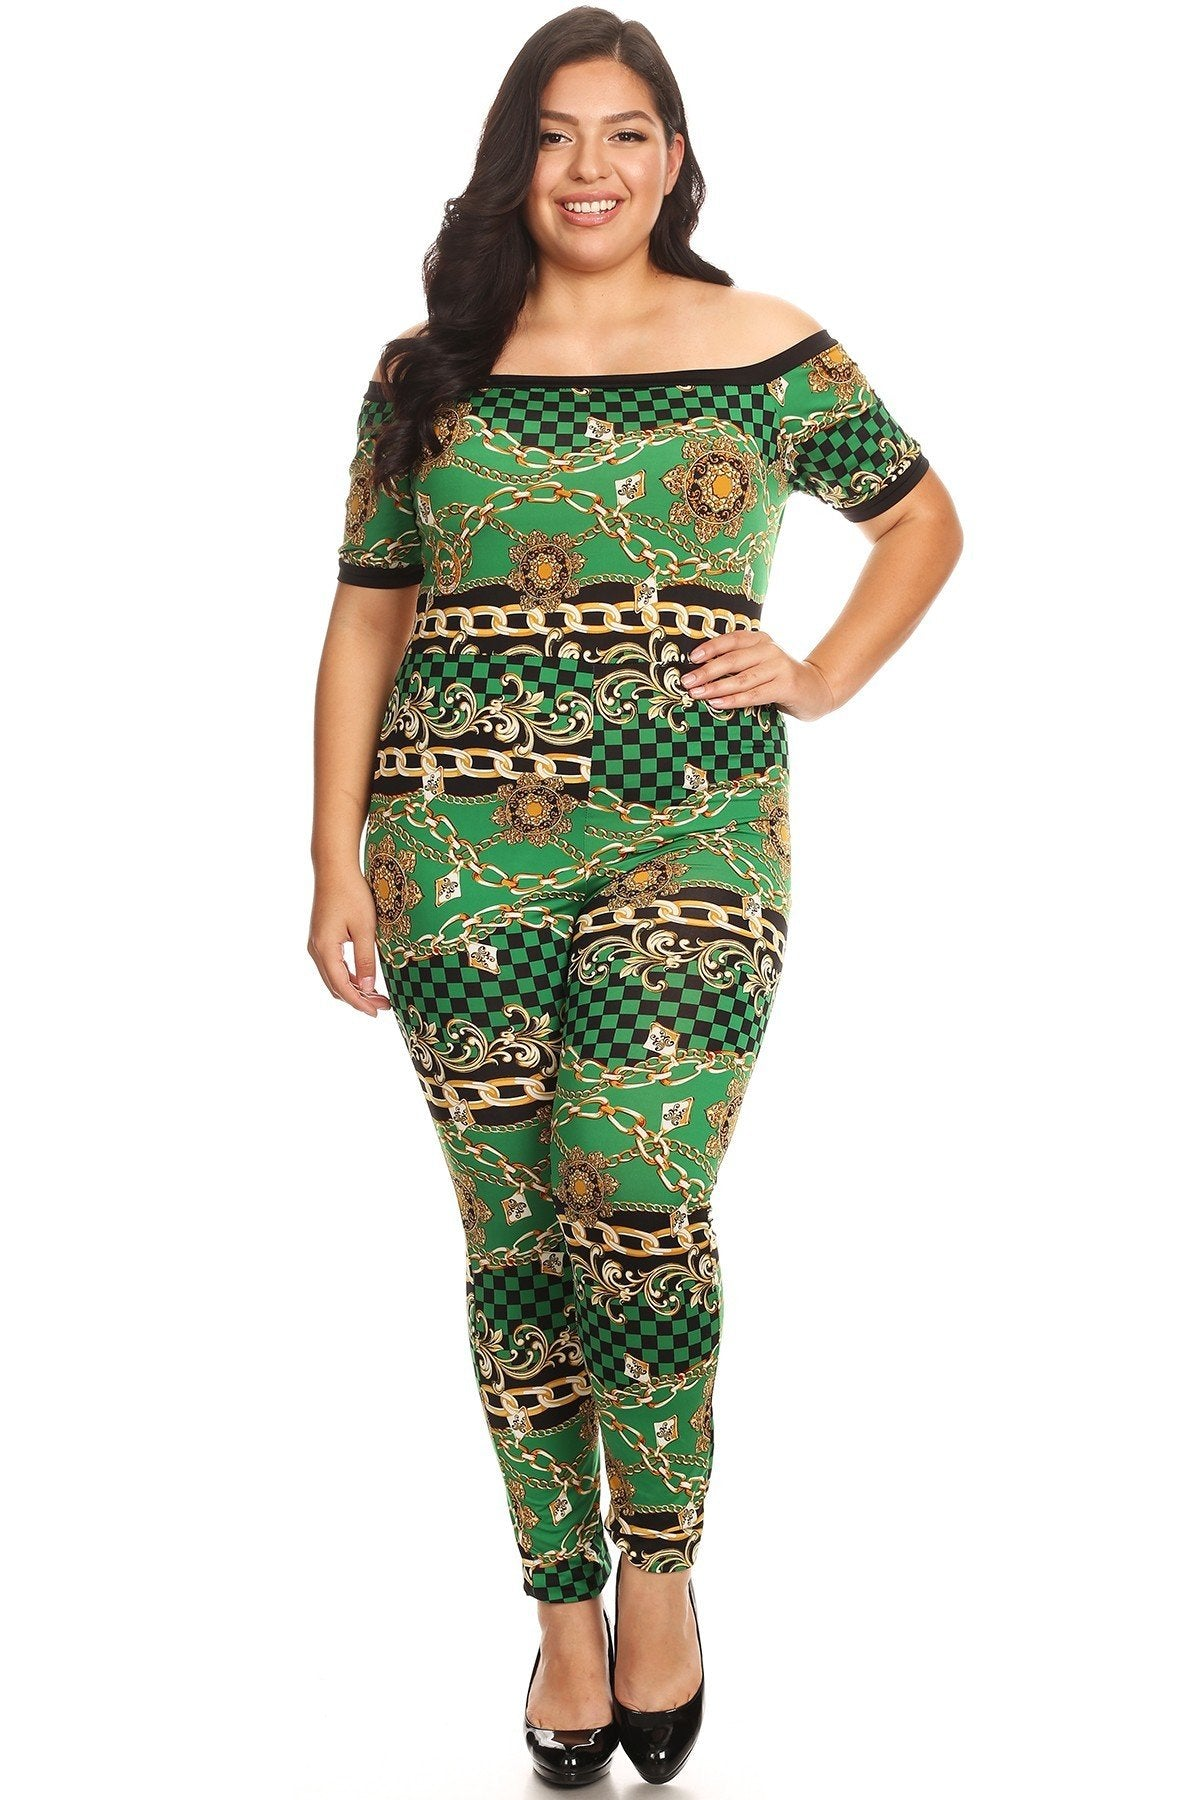 dae8cf64d27 Plus Size Chains Printed Bodycon Fit Checkered Jumpsuit – slayboo